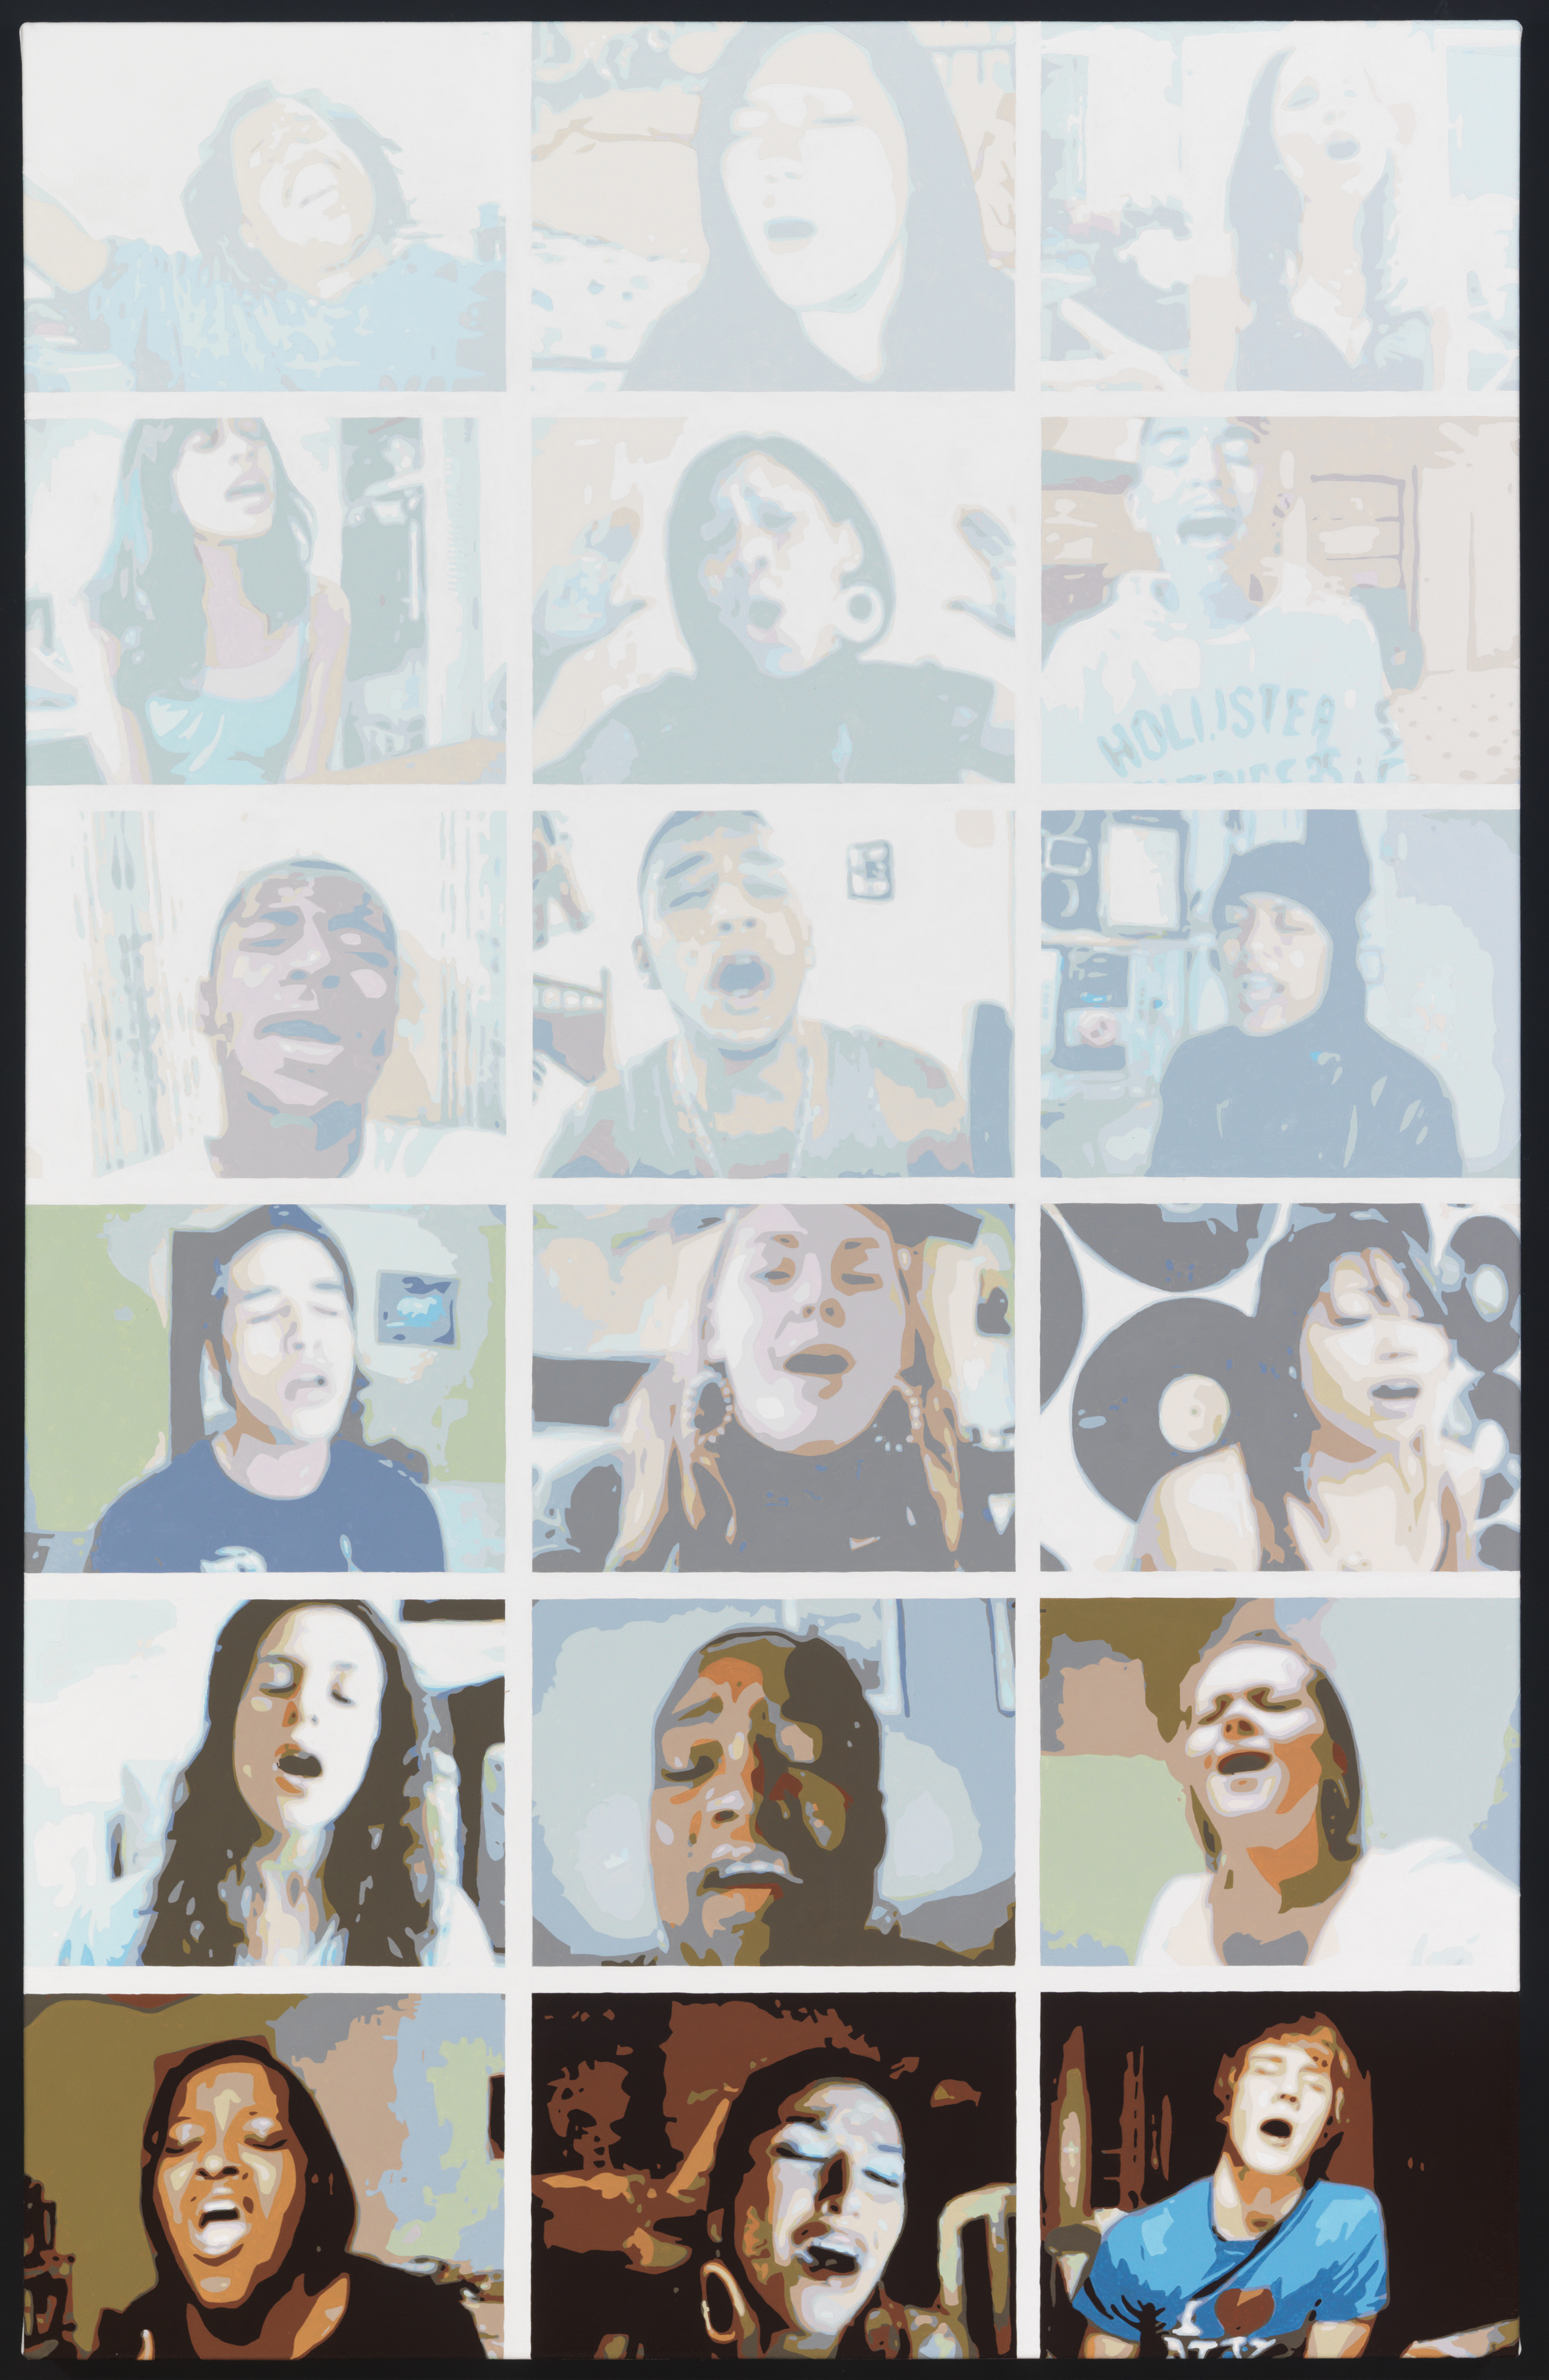 """18 People Covering Alicia Keys' Song """"No One"""", 2008 Oil on Canvas, 56"""" x 36"""""""